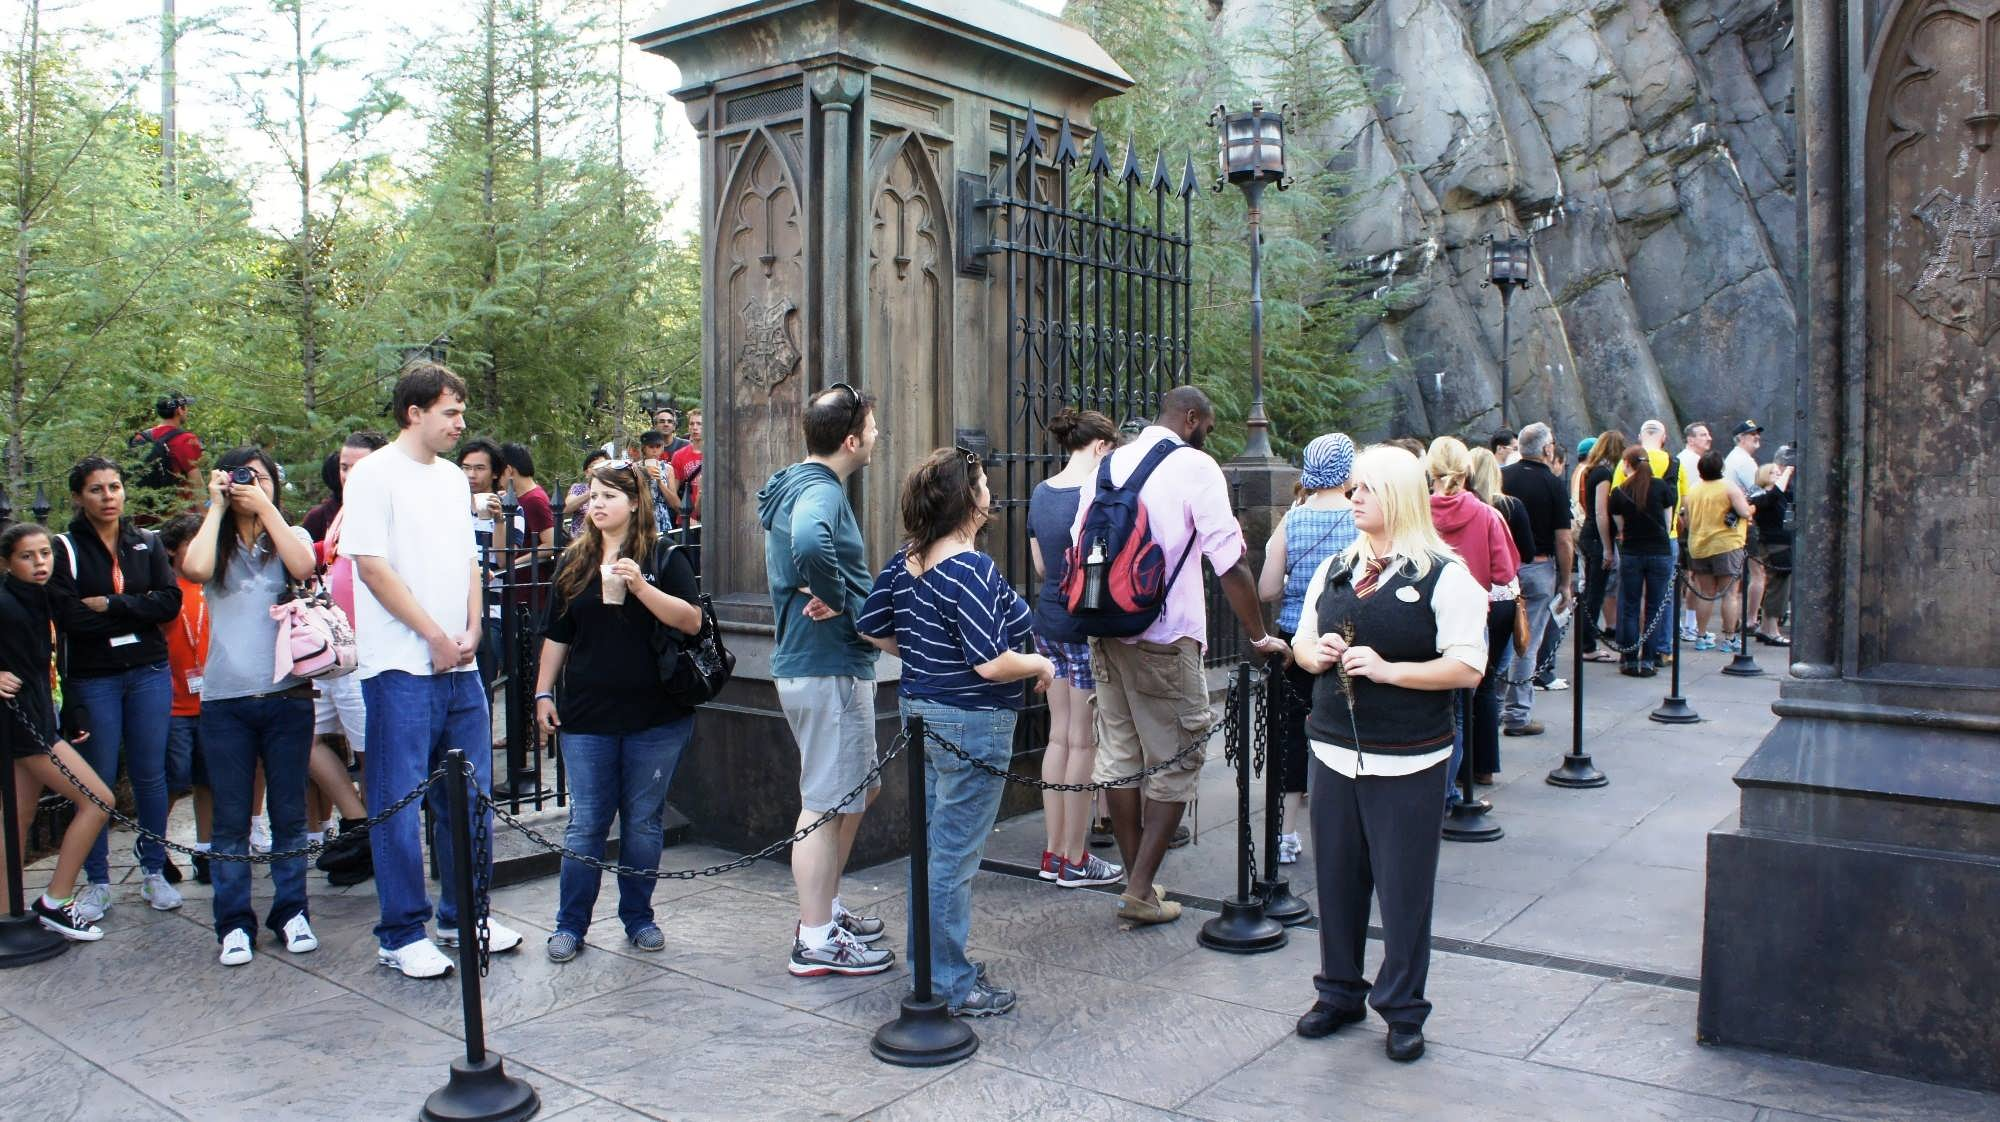 A Universal team members controls access to the tour-only / single rider line.